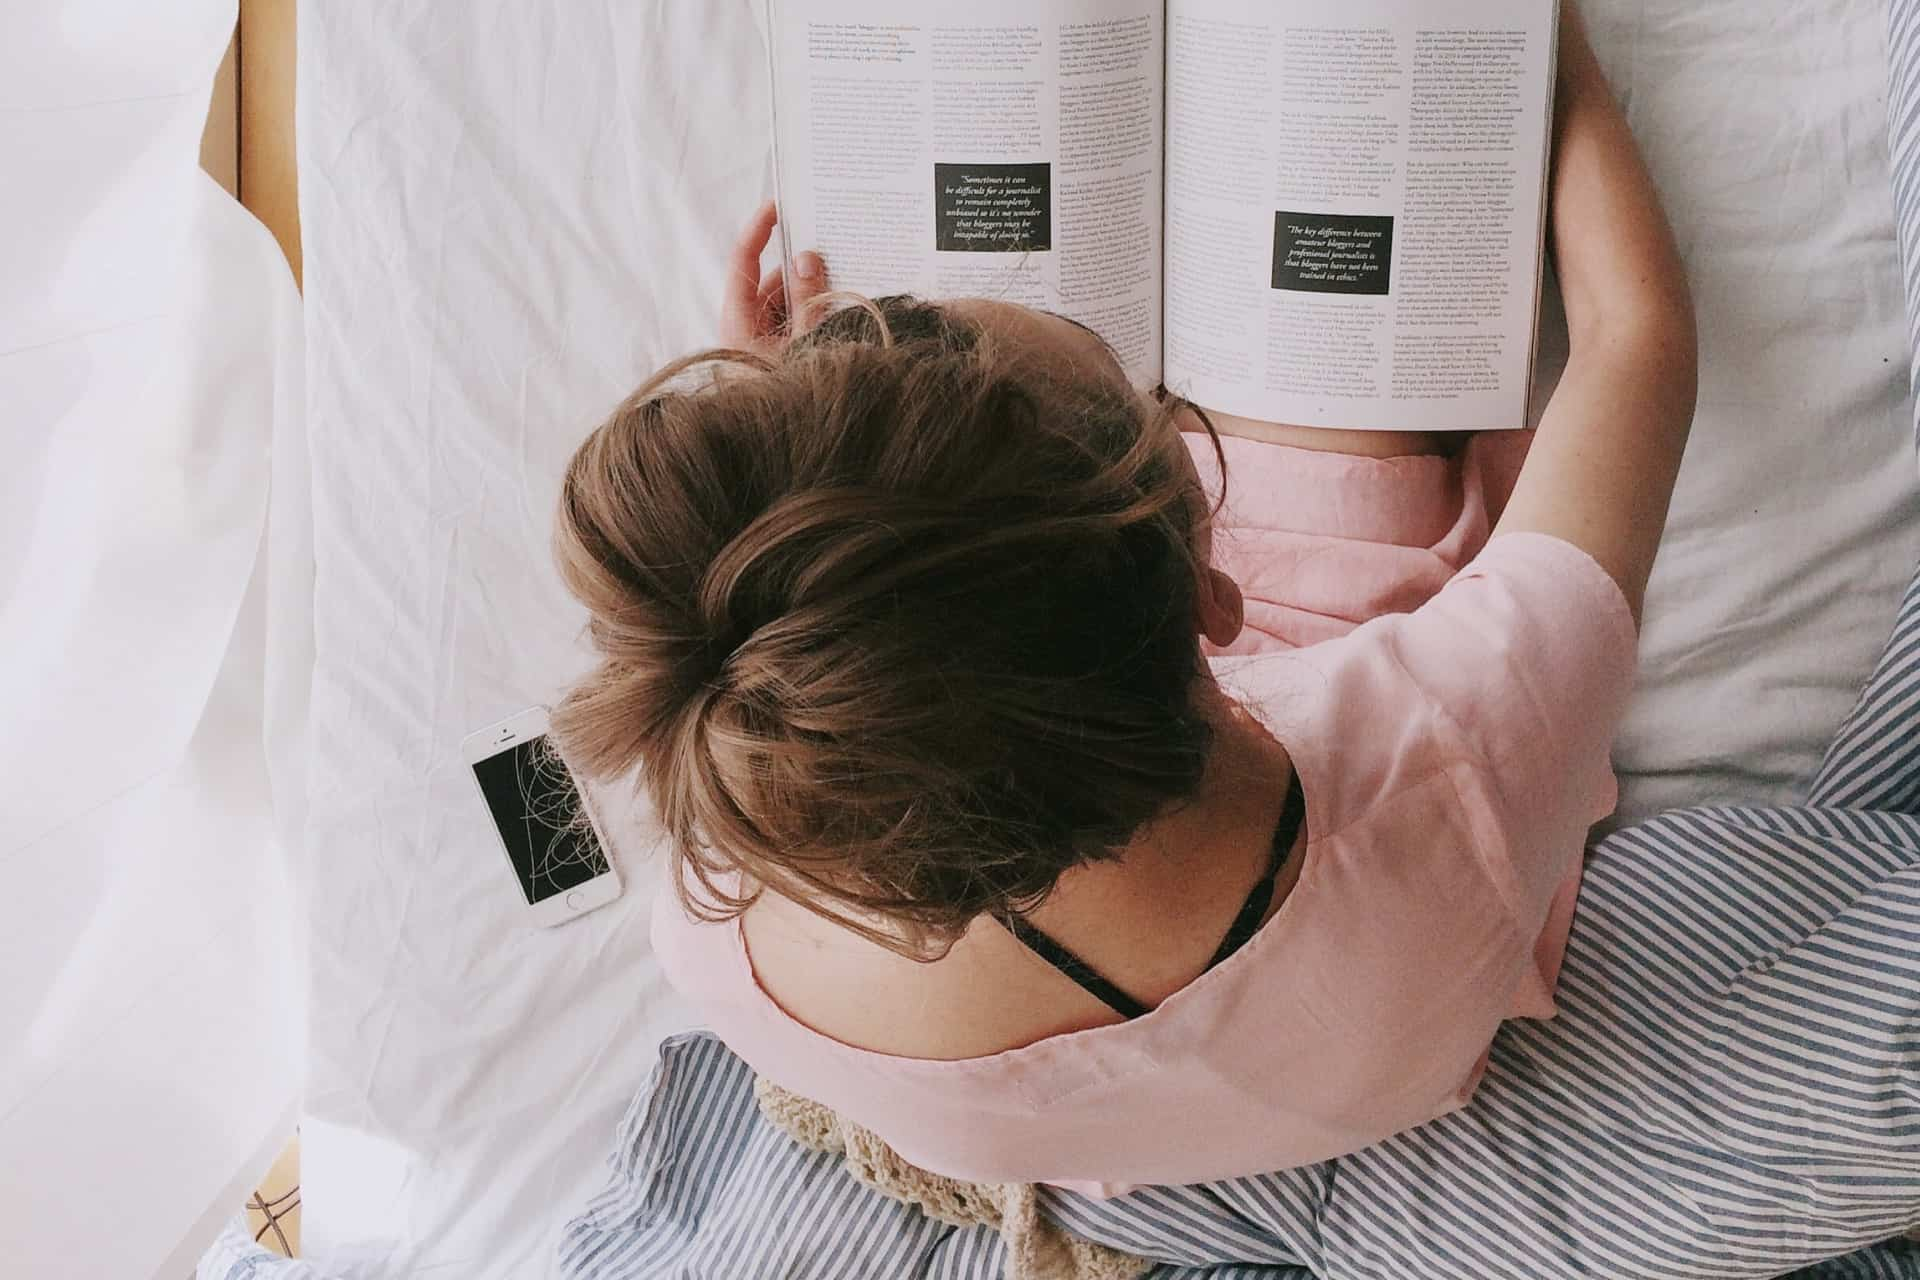 woman-in-pink-dress-sitting-on-bed-while-reading-698158